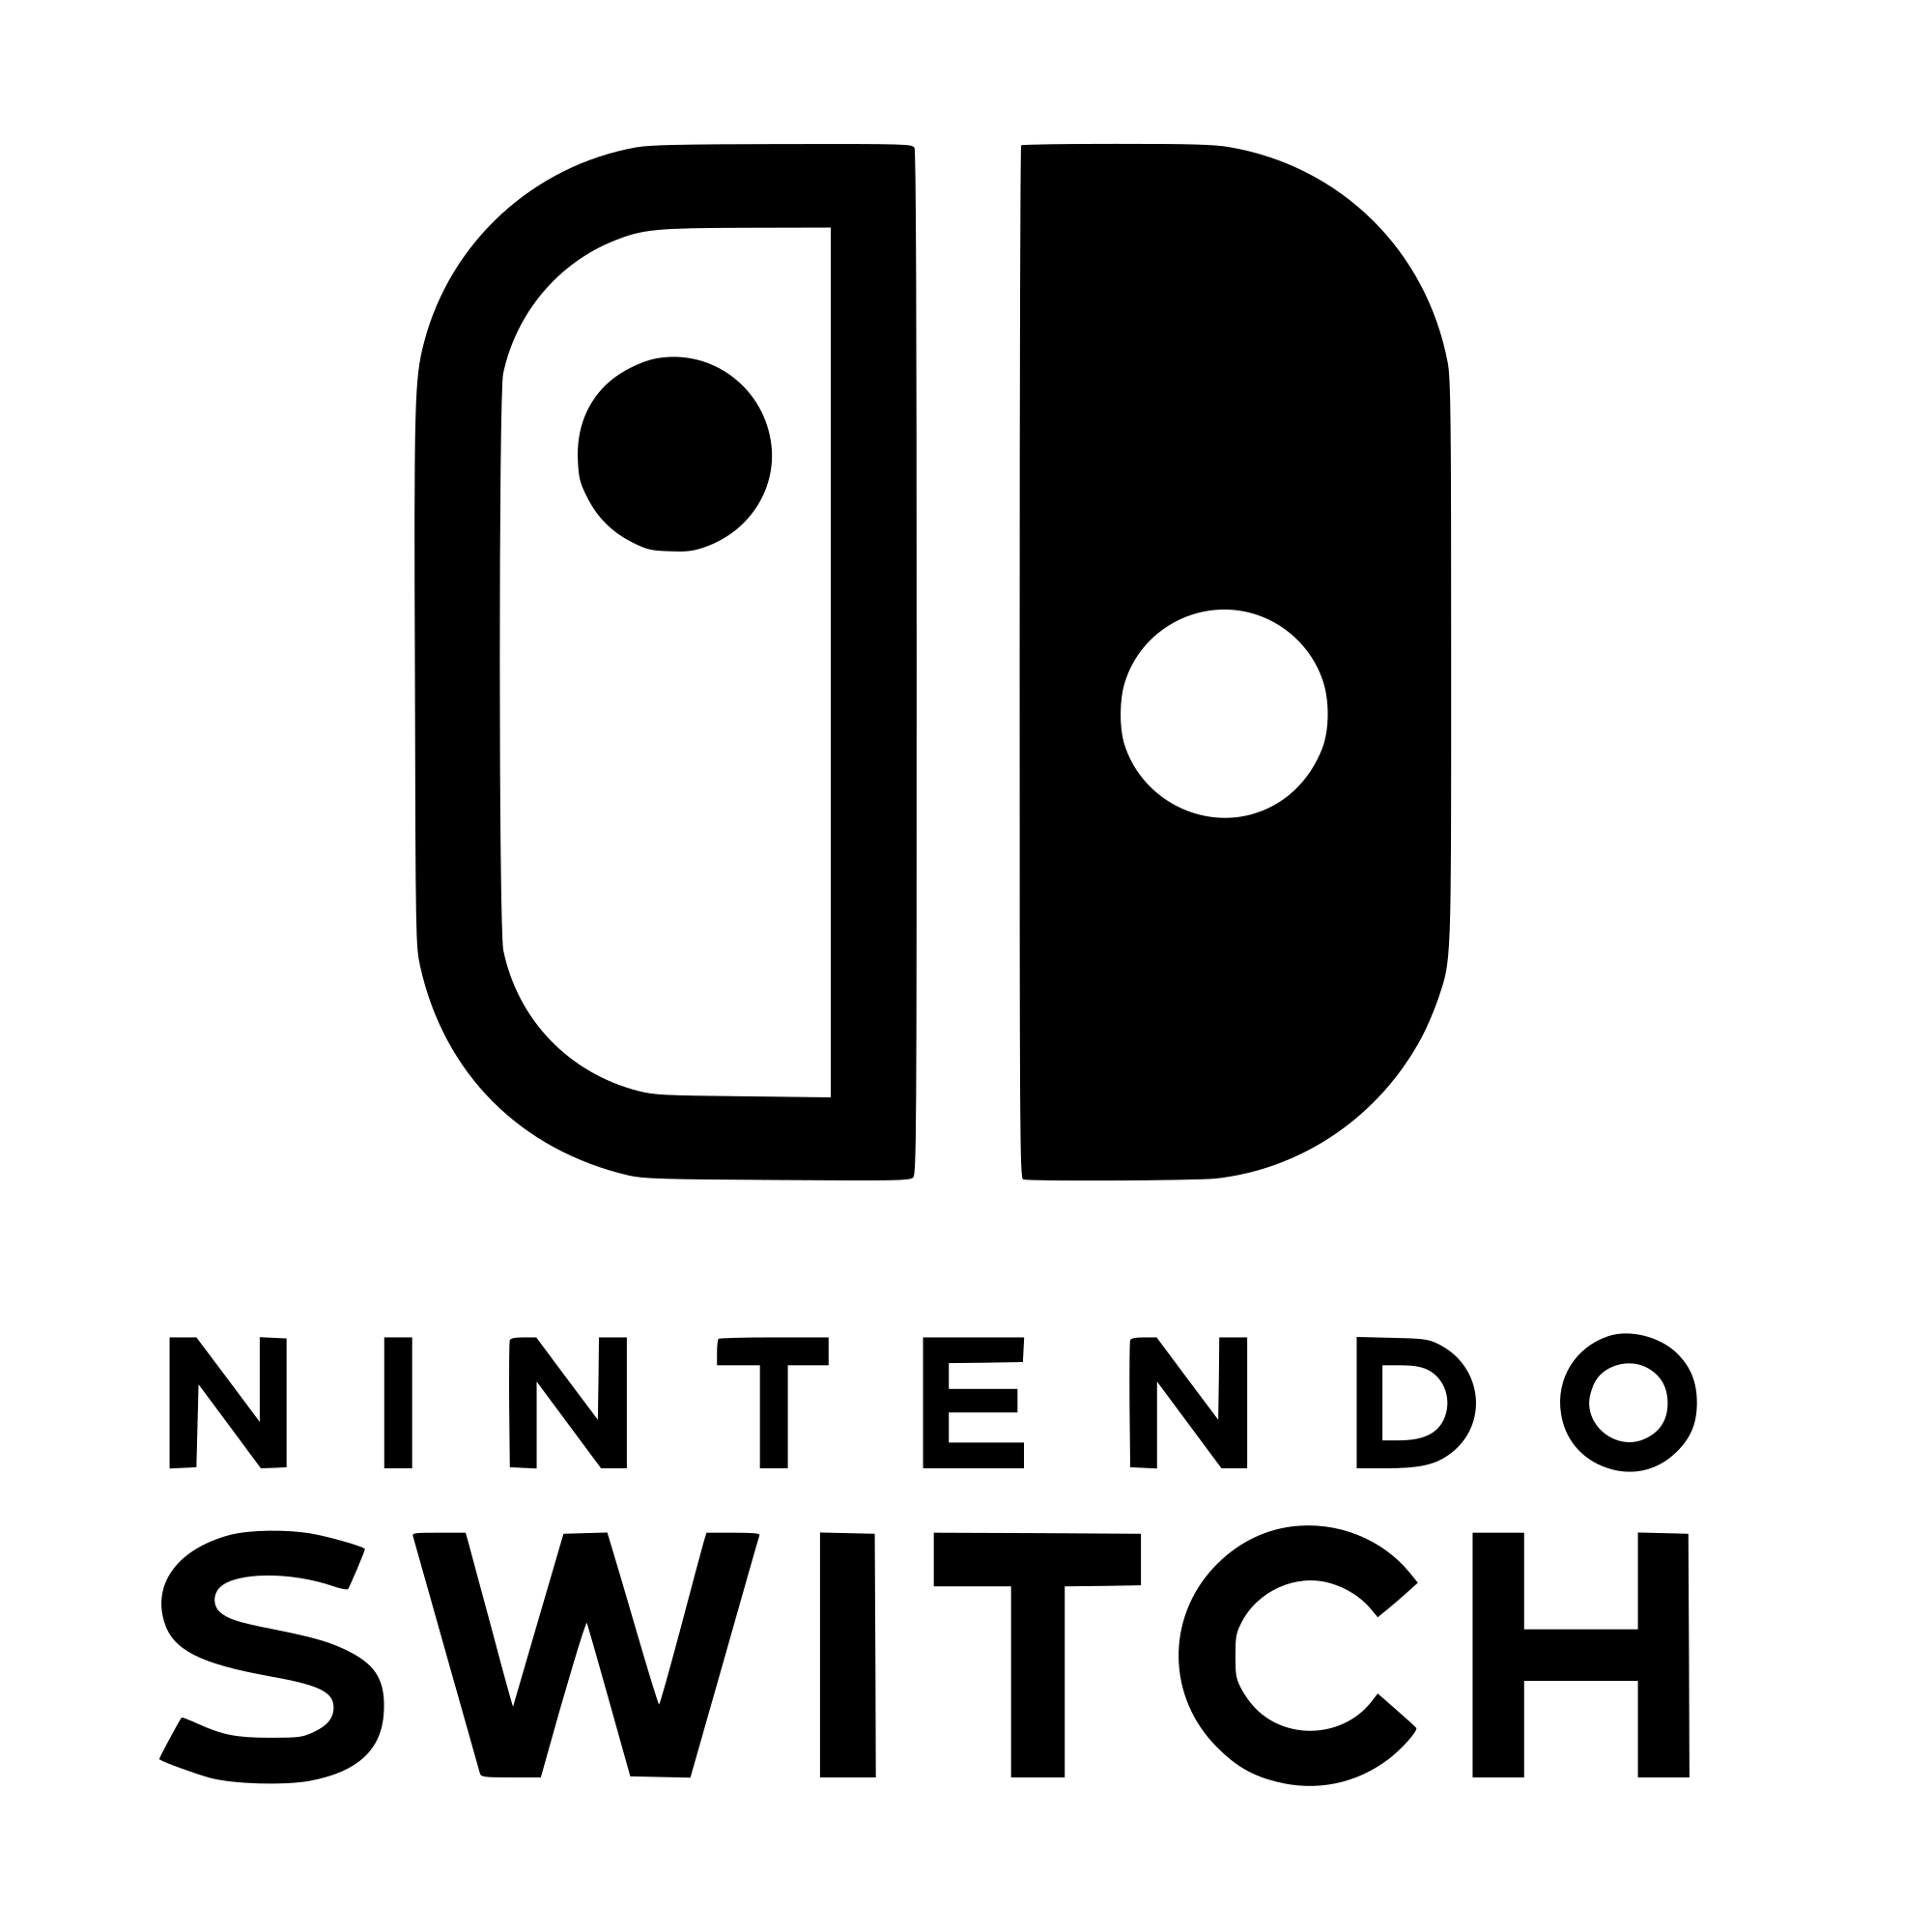 Nintendo switch logo png. File svg wikimedia commons